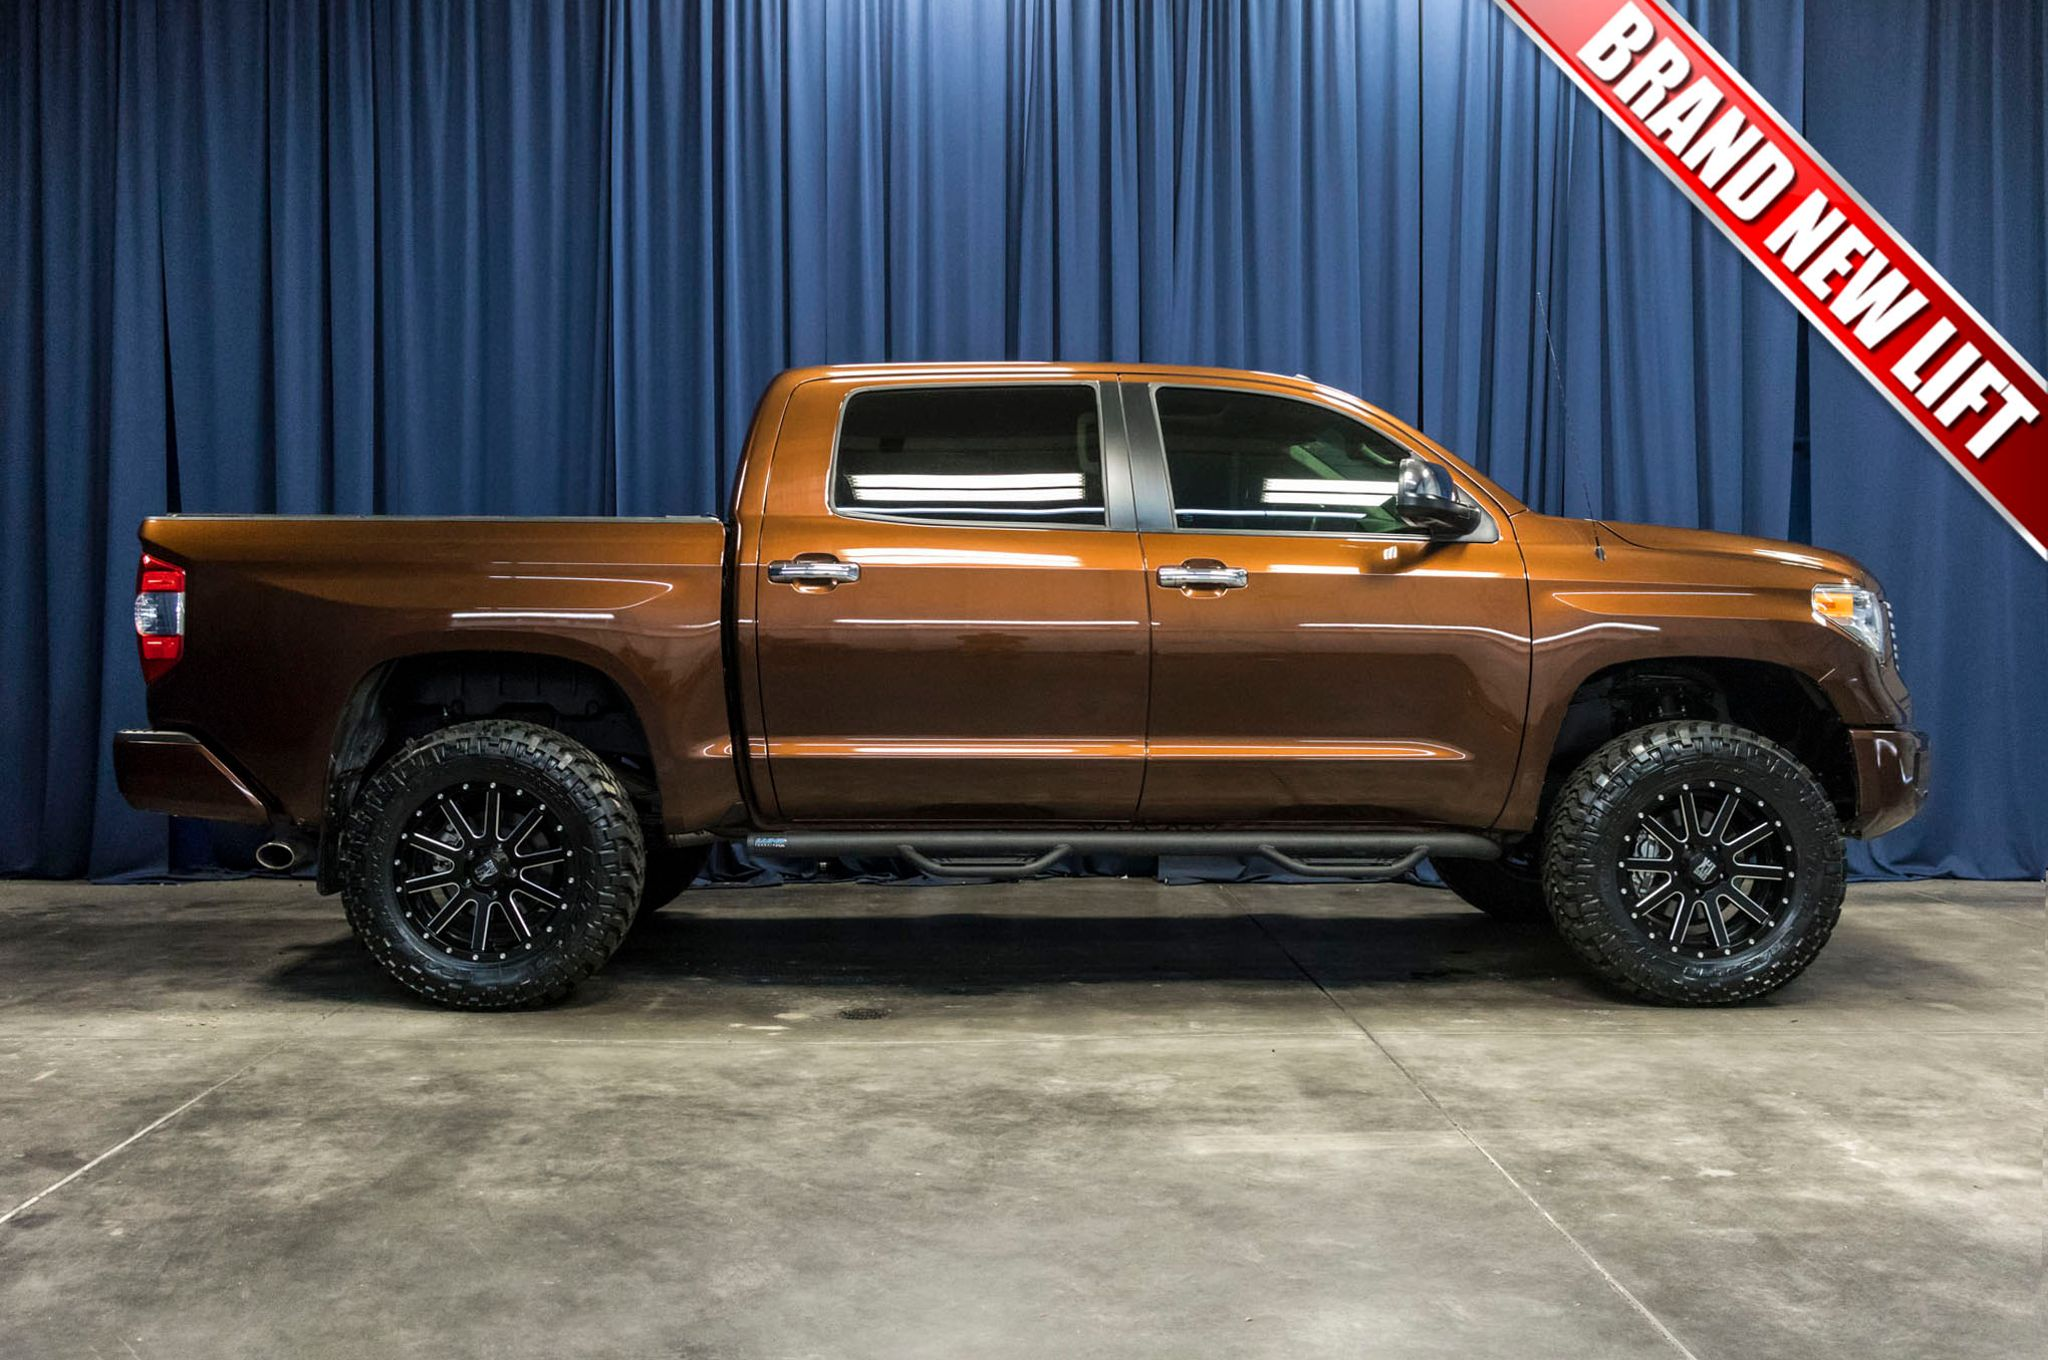 Used lifted 2016 toyota tundra platinum 4x4 truck for sale for Toyota tundra motor for sale